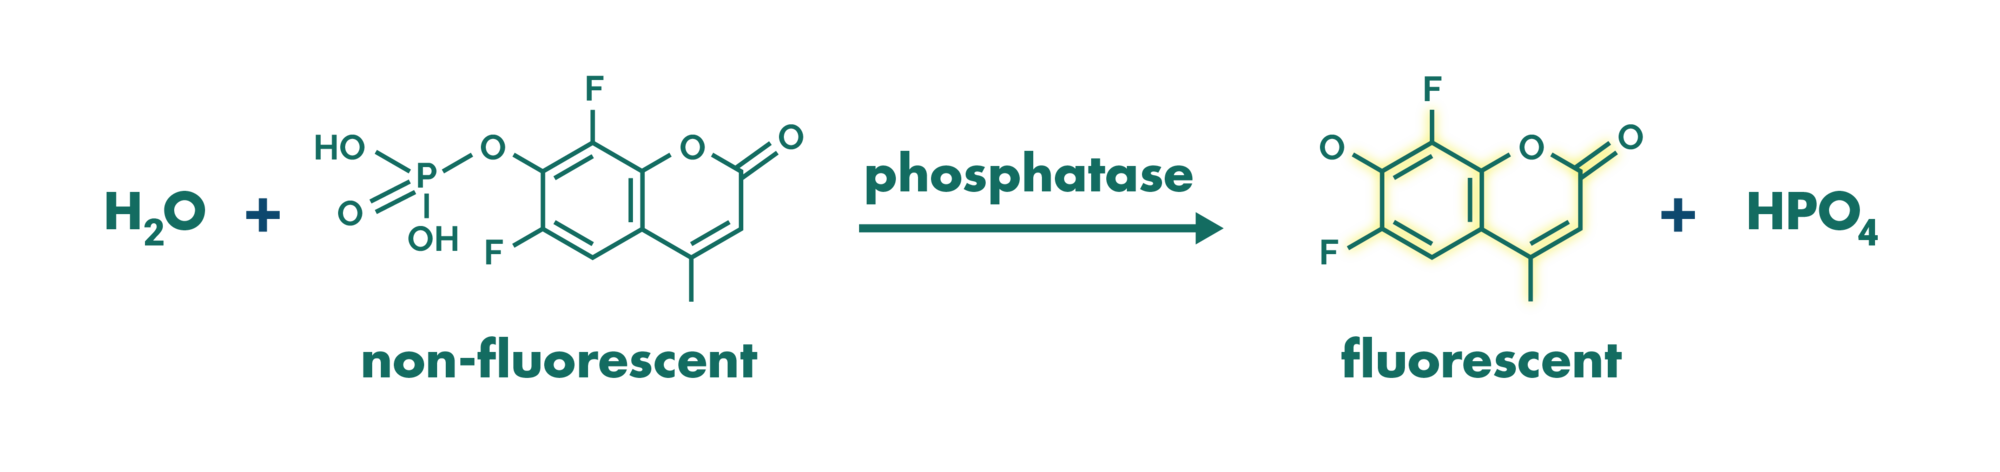 Principle of phosphatase assay with the fluorogenic substrate difmup.